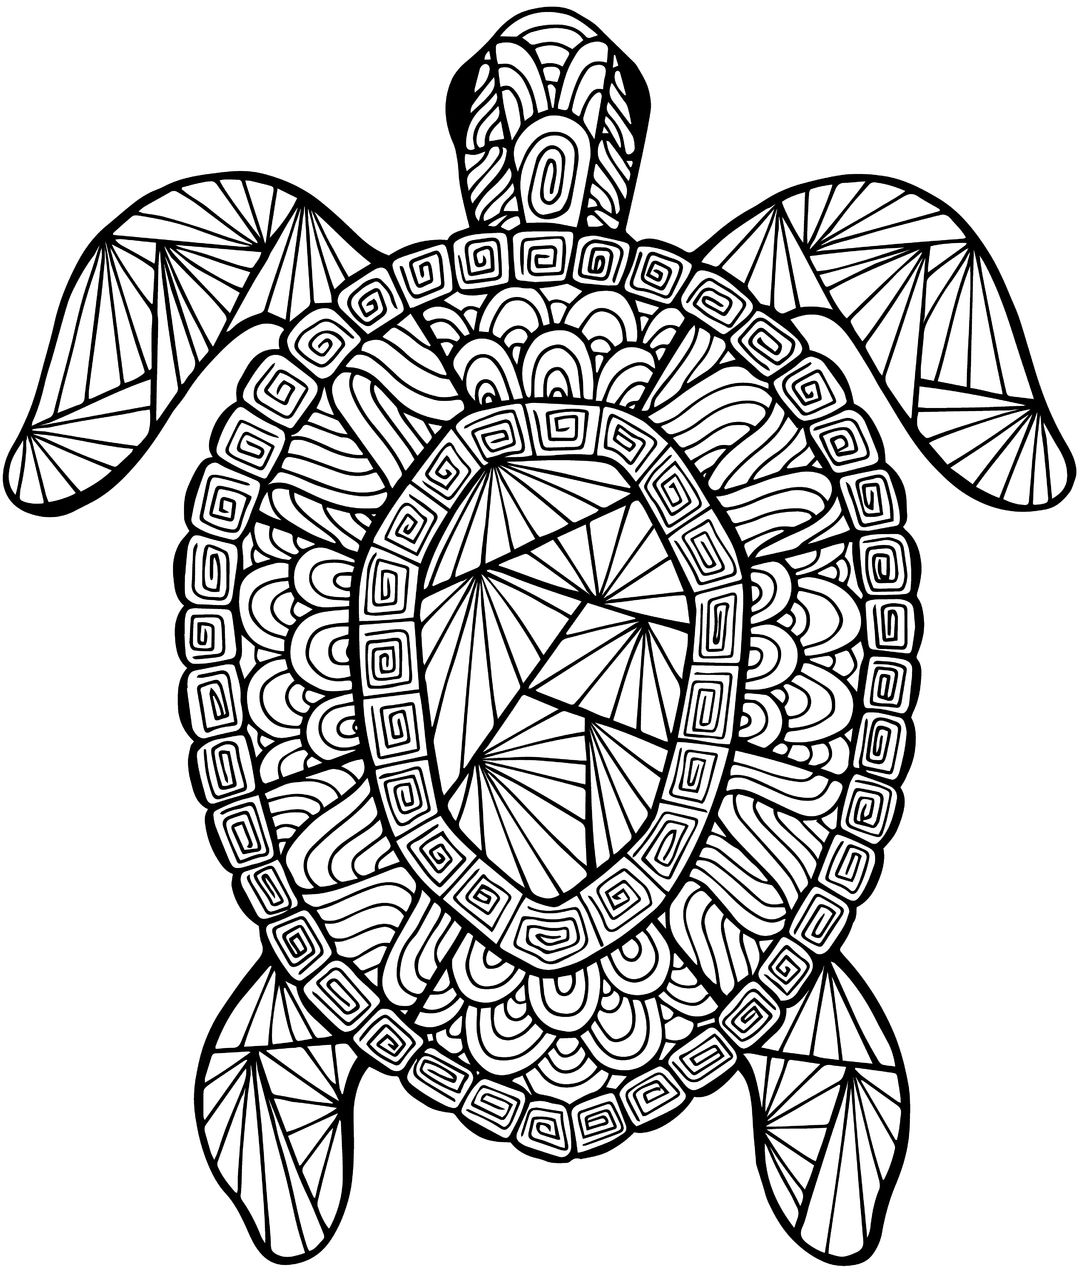 Detailed Sea Turtle Advanced Coloring